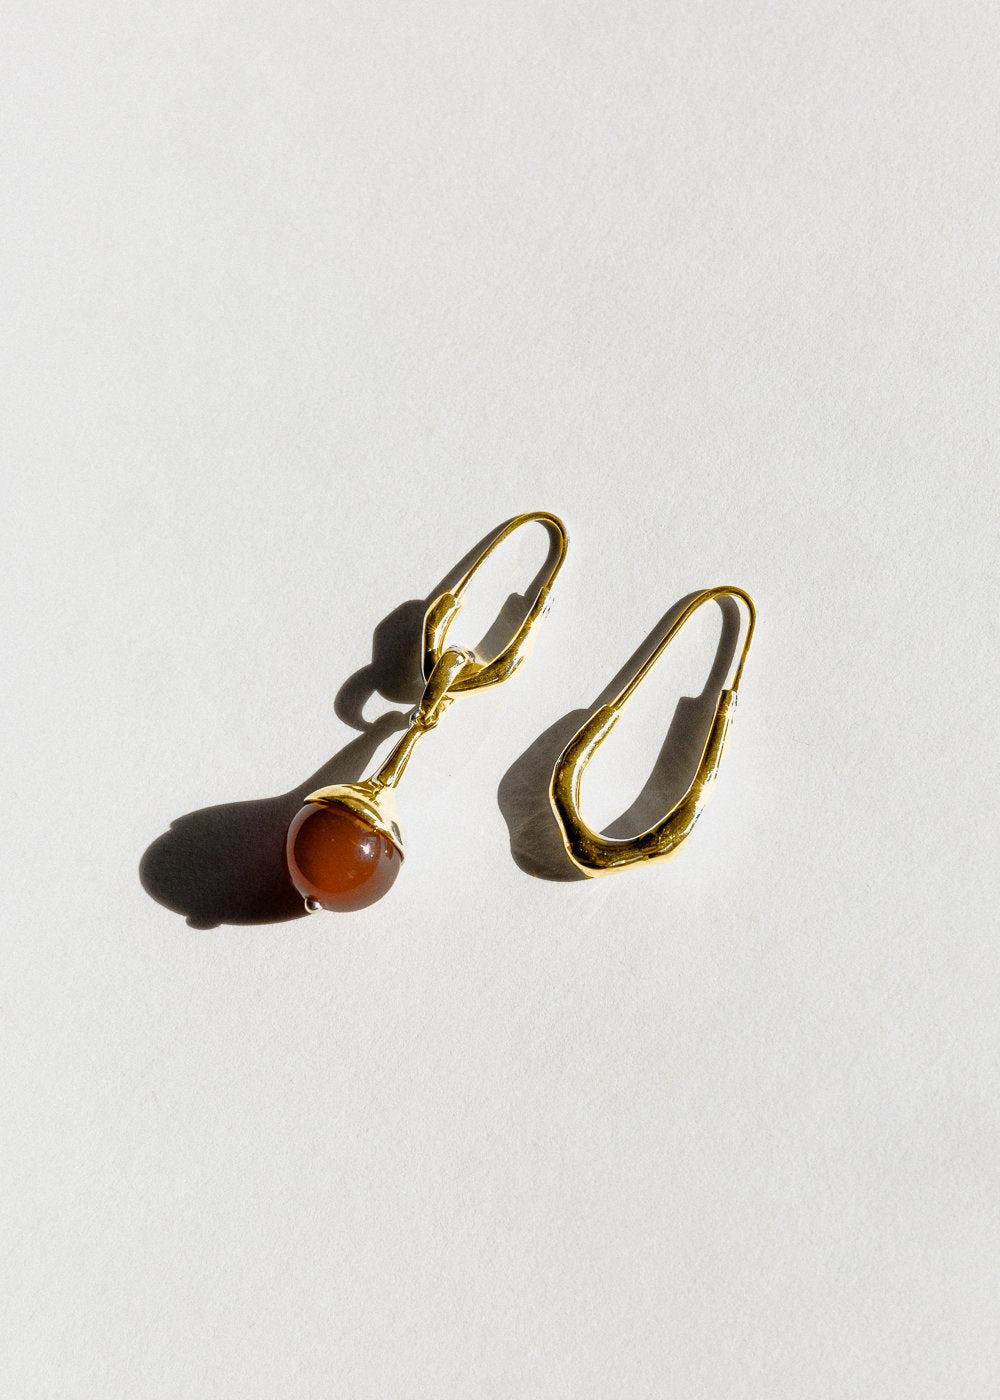 Jasmin Sparrow Lulu Carnelian gold asymmetrical earrings from Maker's Mrkt Melbourne. Makers Market